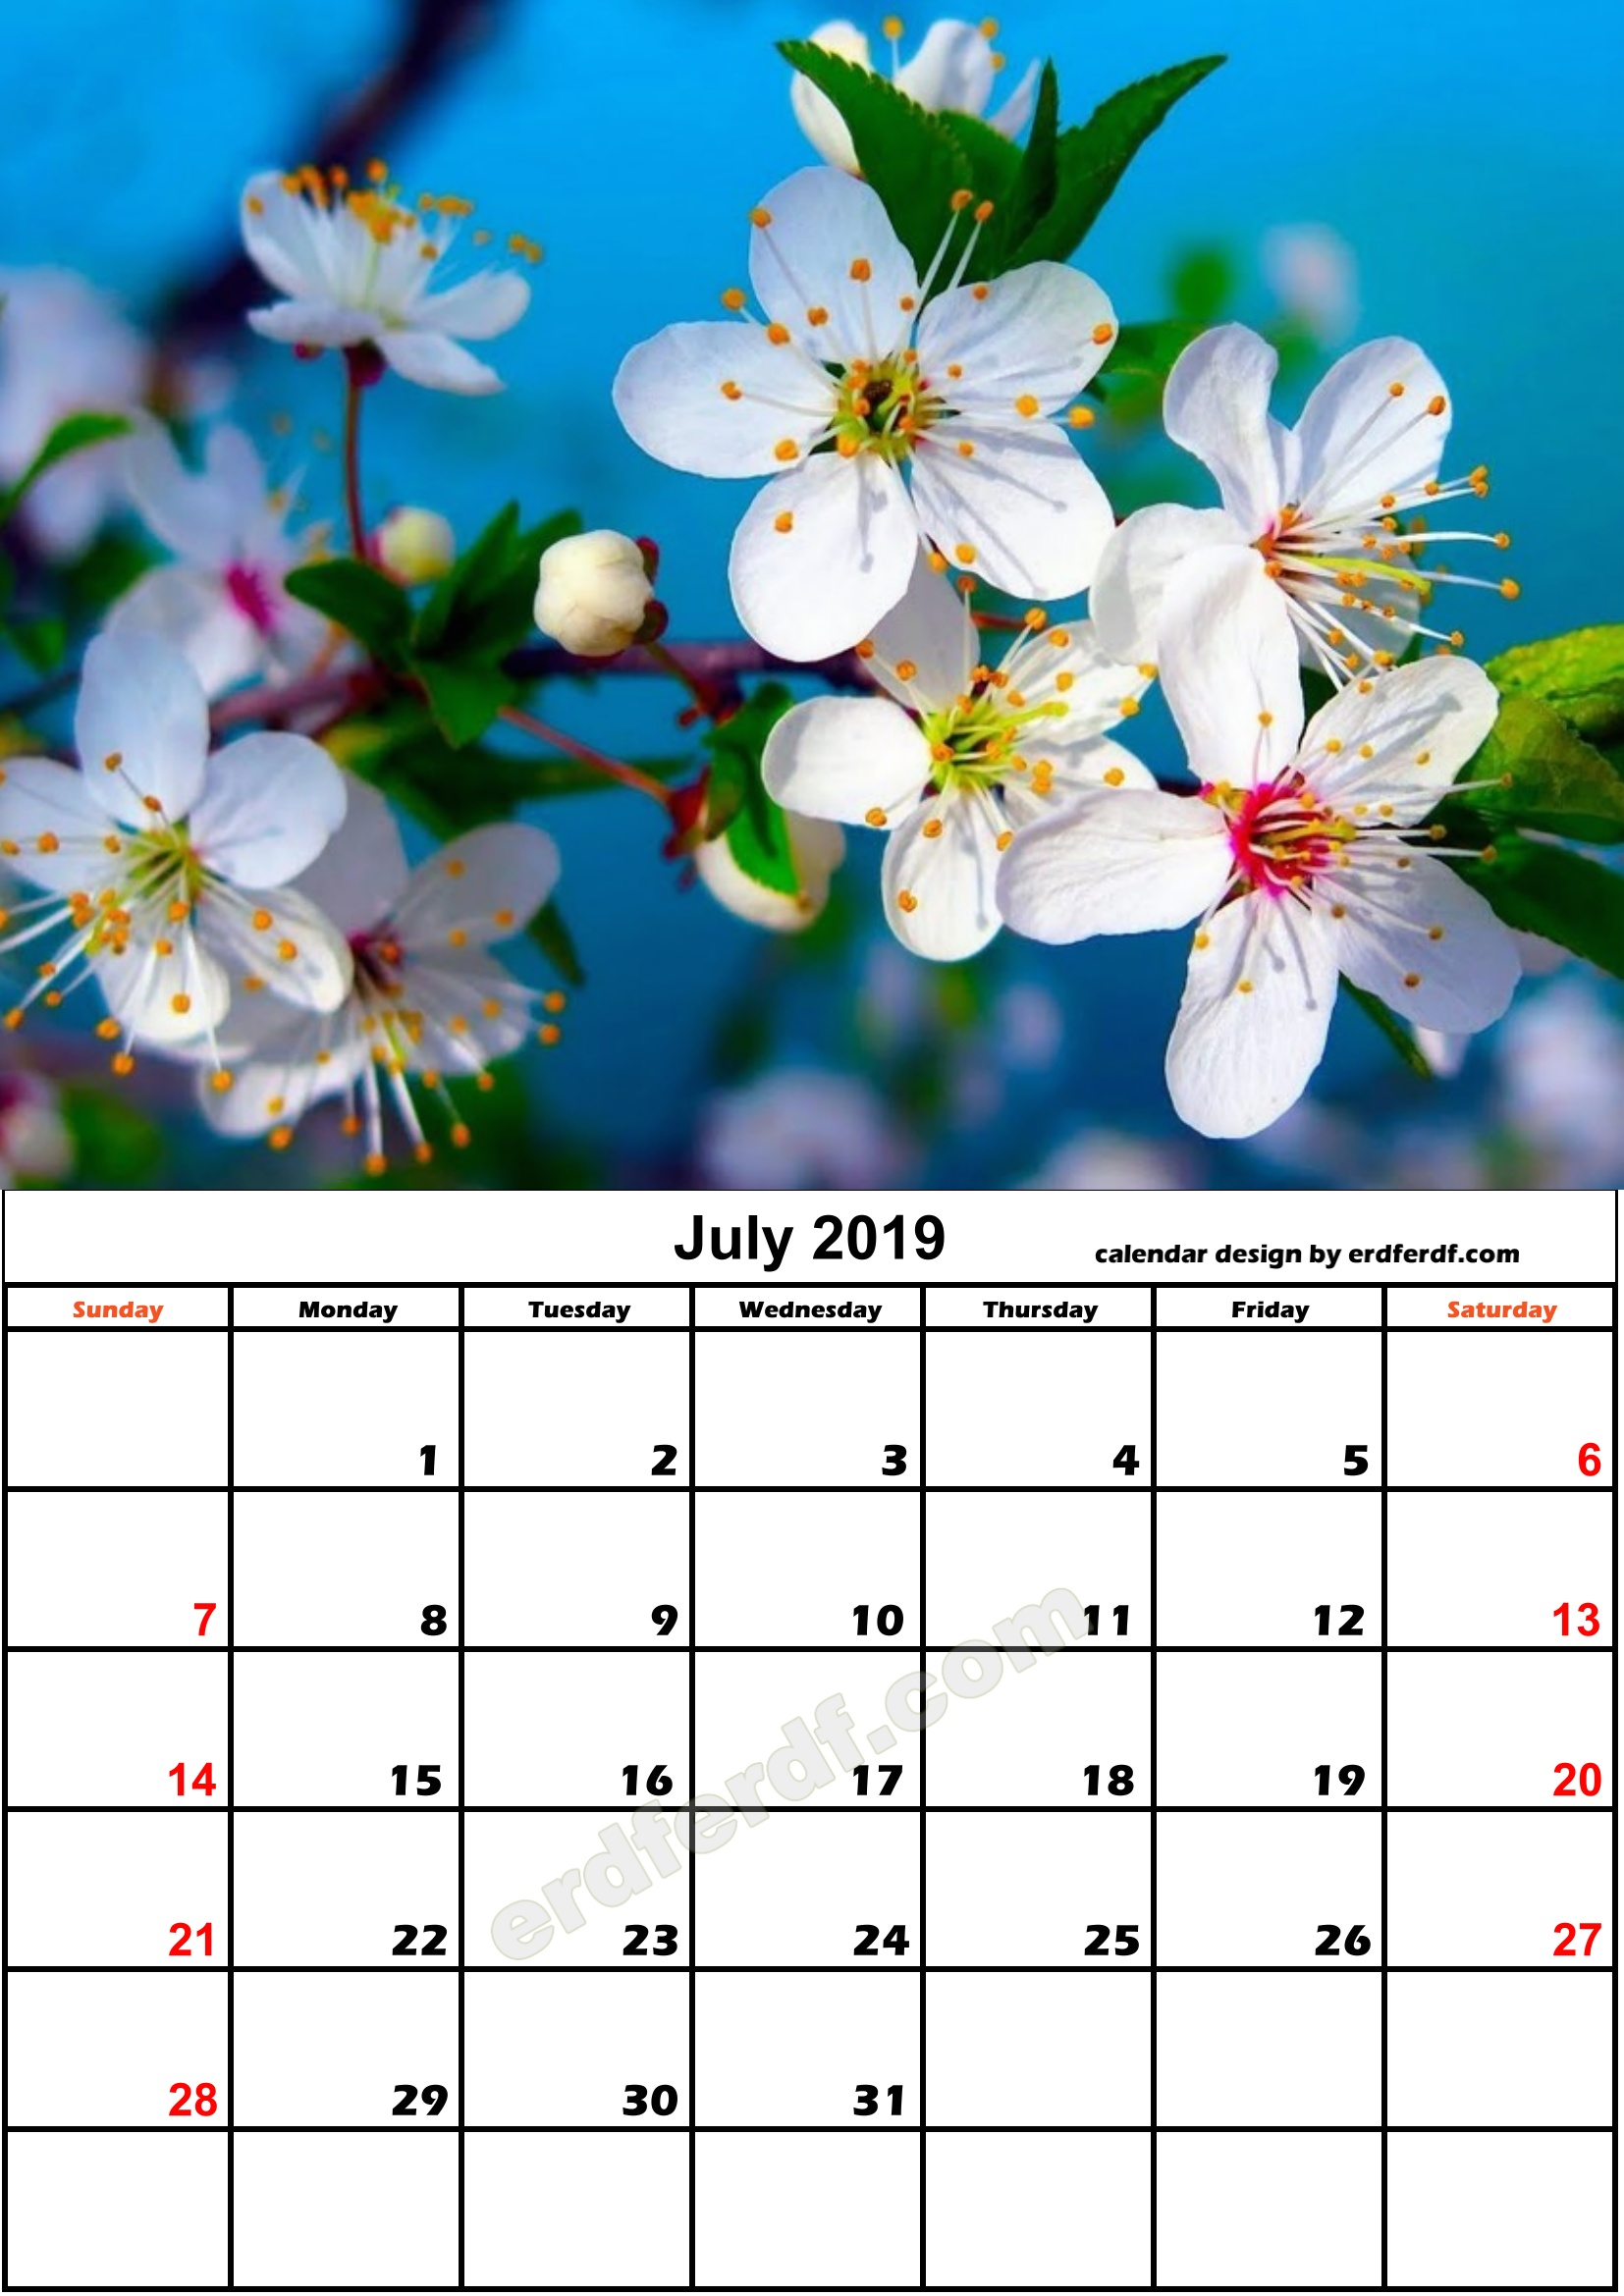 7 July Nature Calendar Monthly 2019 Free Download